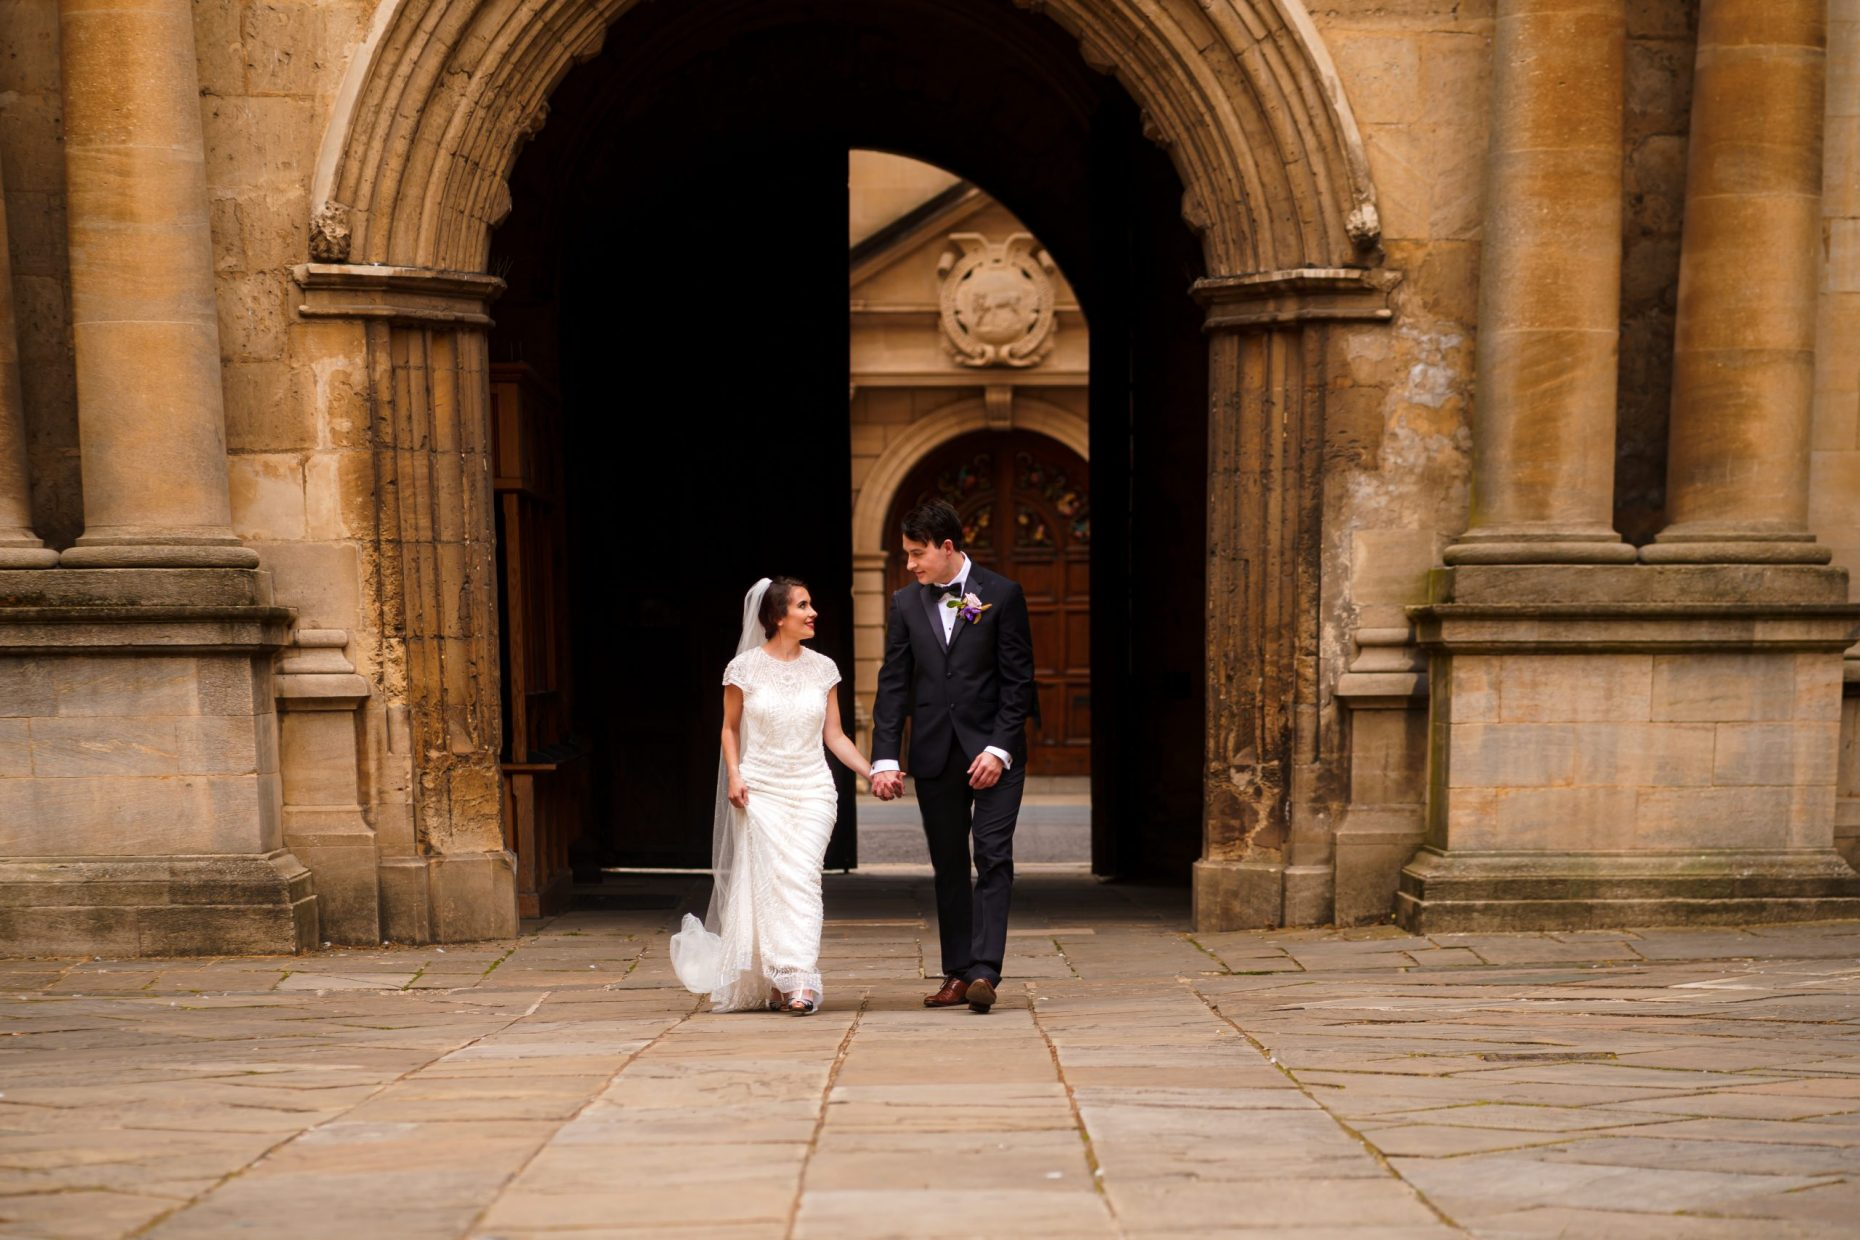 Bride and groom walking hand in hand in the Bodleian Library, Oxford